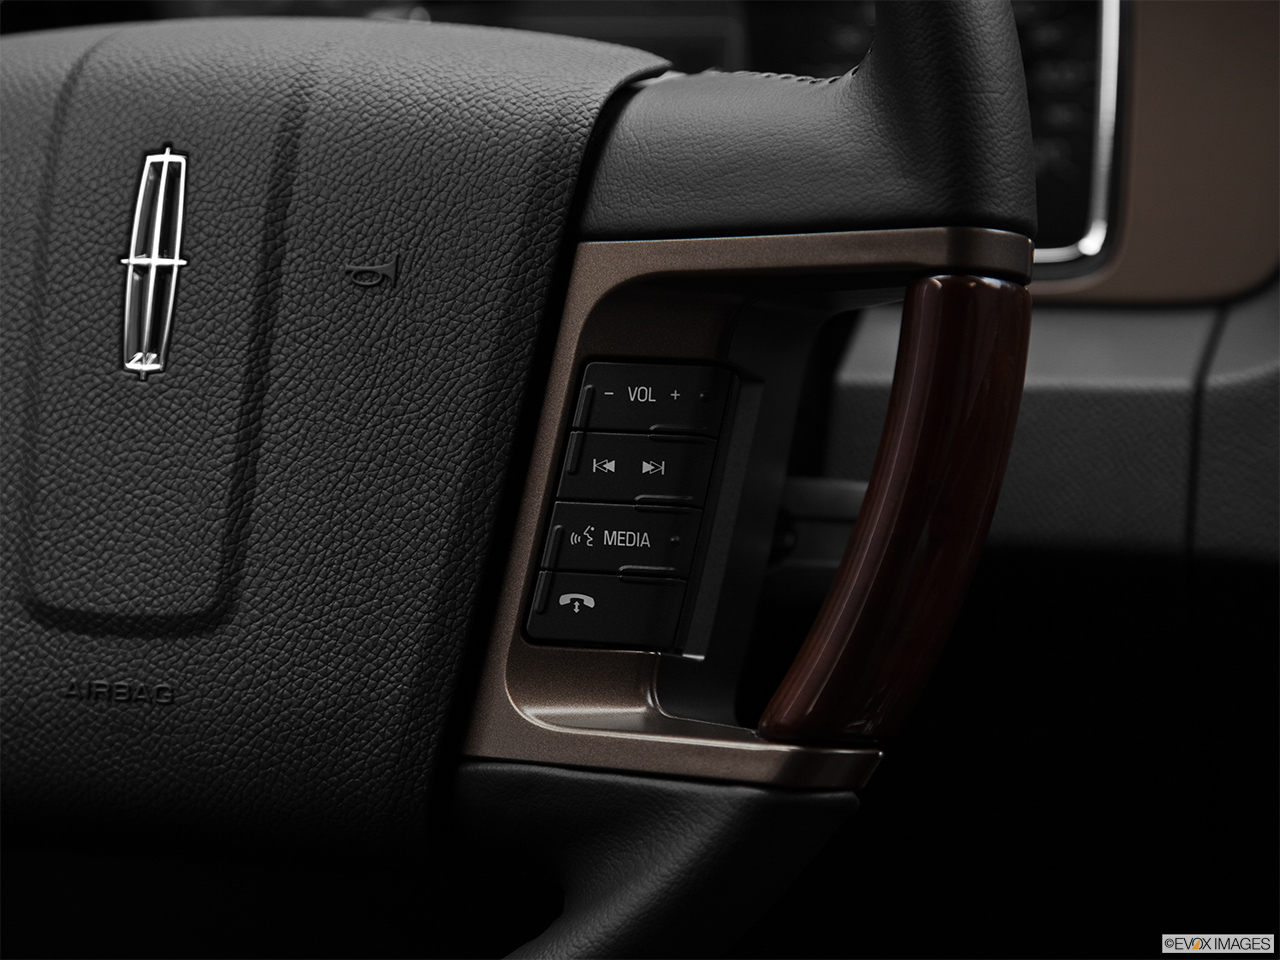 2012 Lincoln Navigator Base Steering Wheel Controls (Right Side)